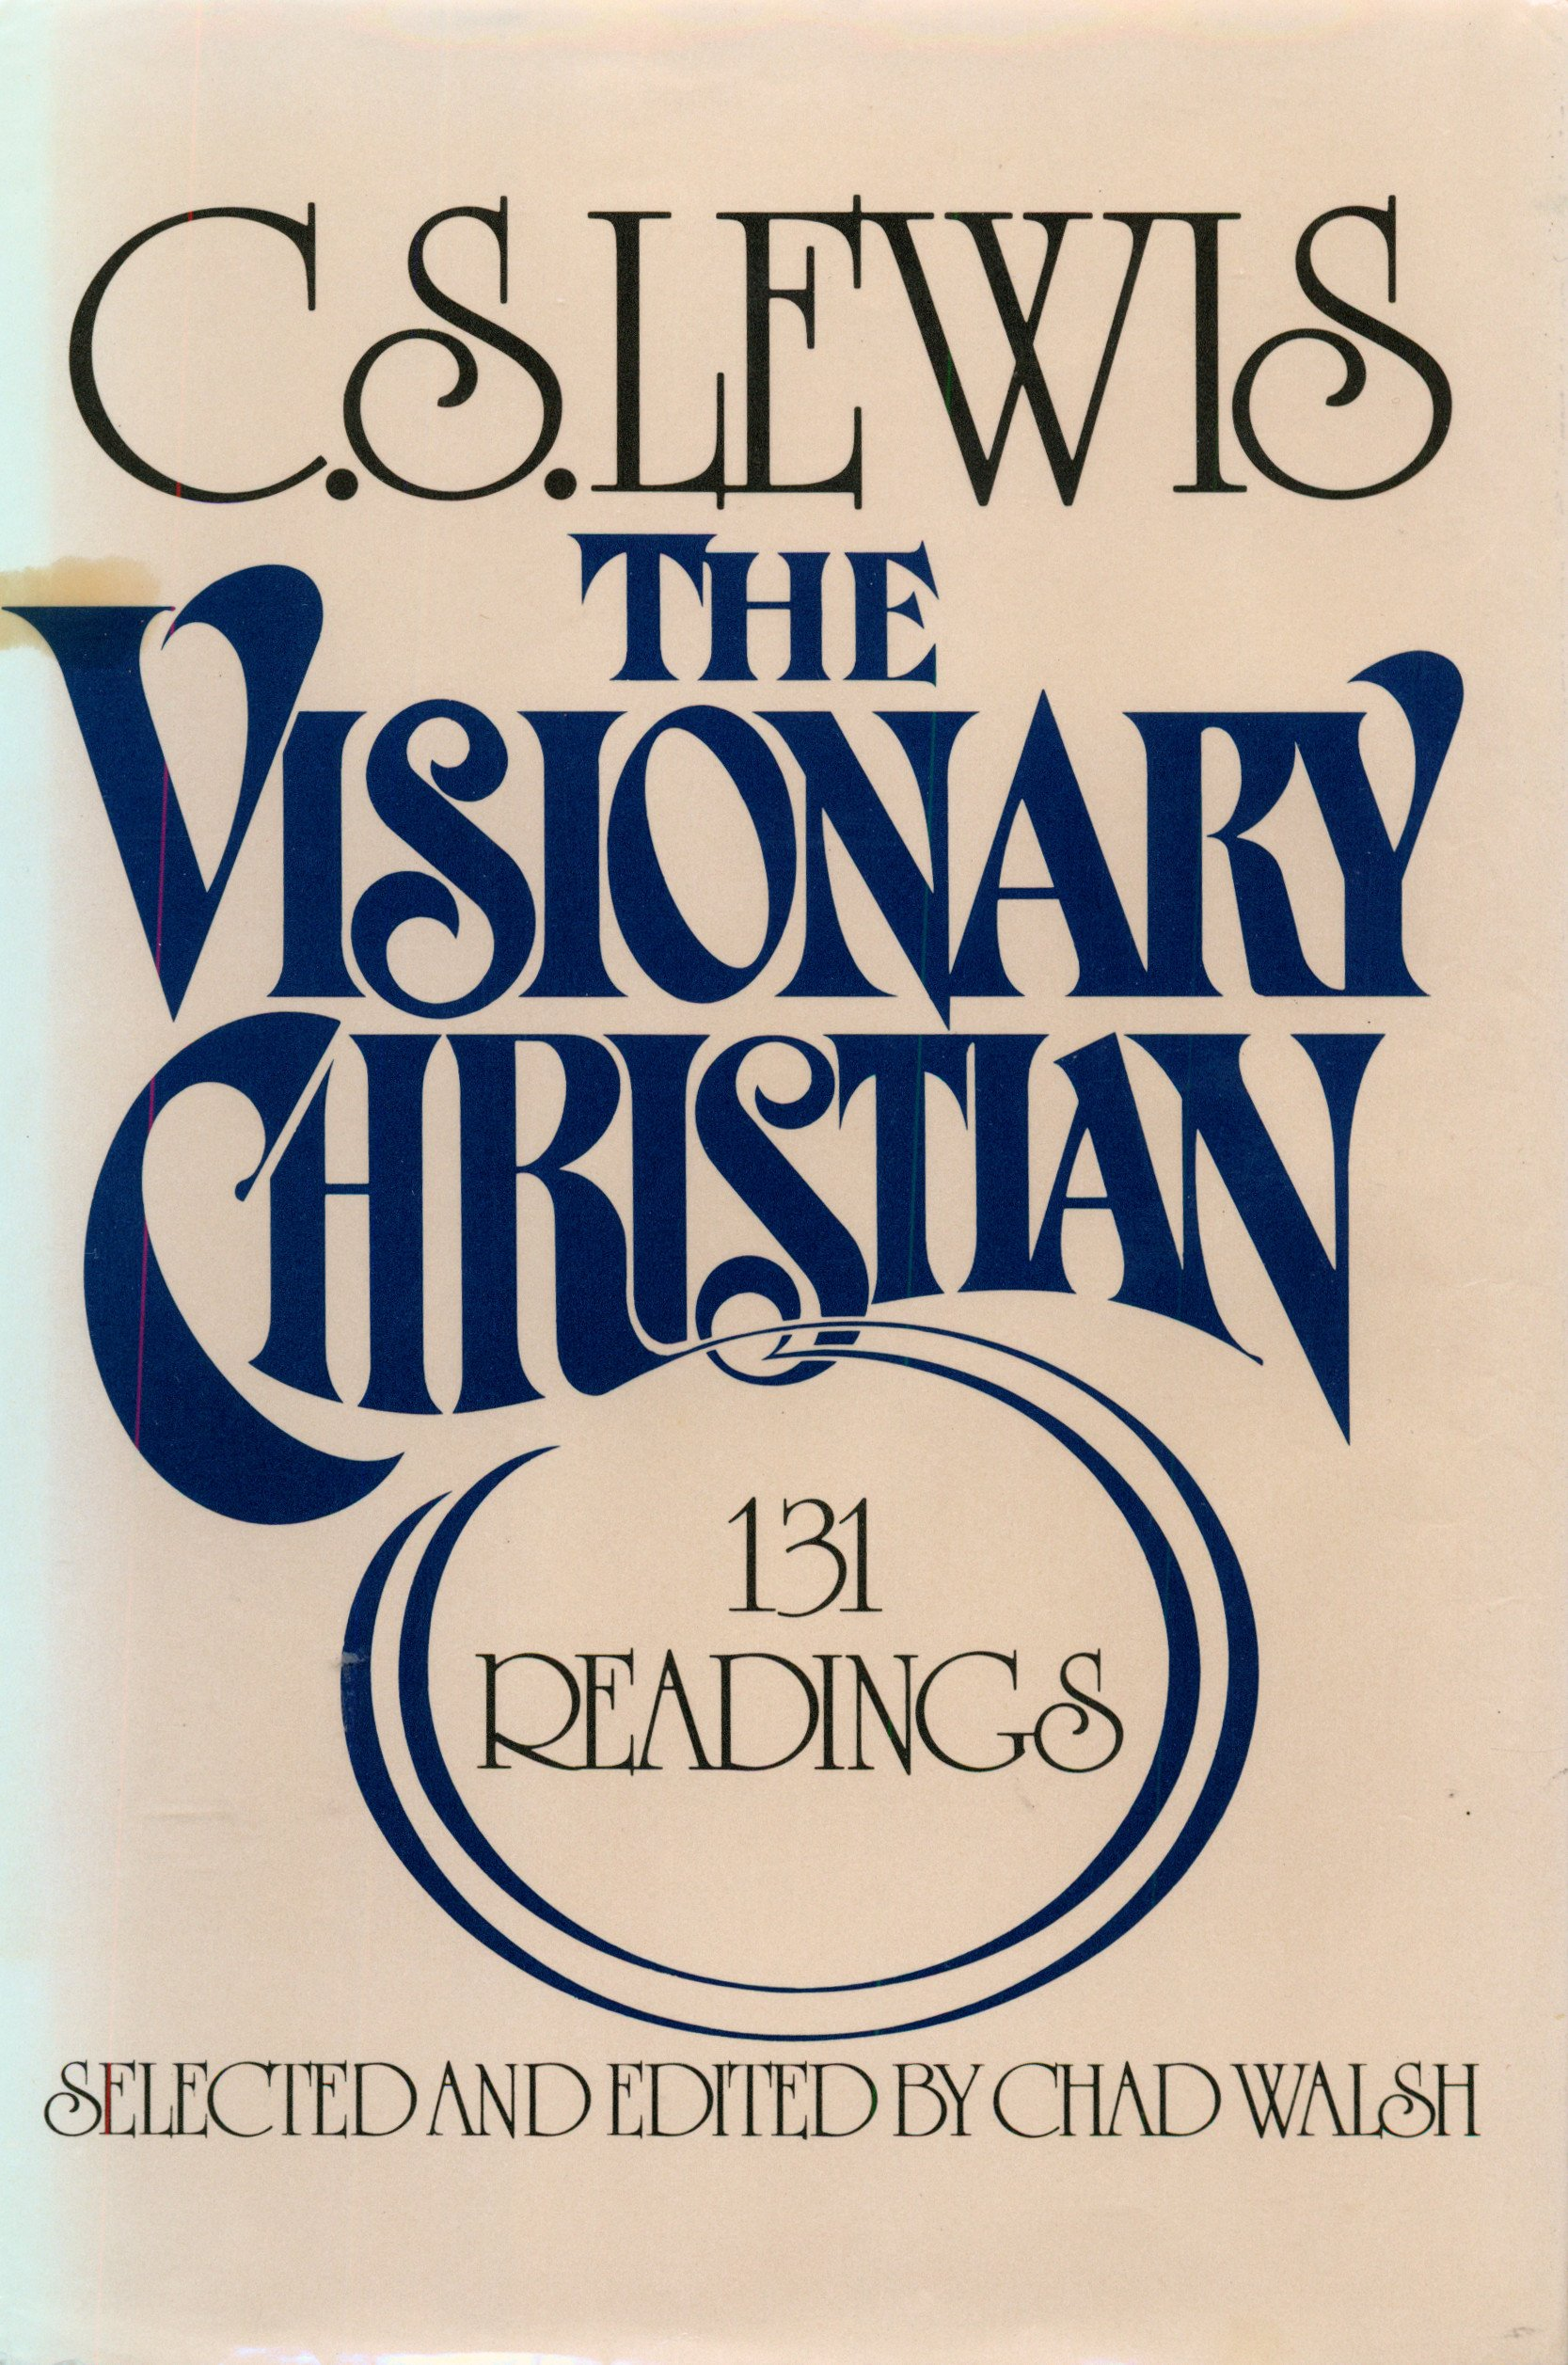 The Visionary Christian: 131 Readings from C.S. Lewis, C. S. Lewis; Chad Walsh (Editor)